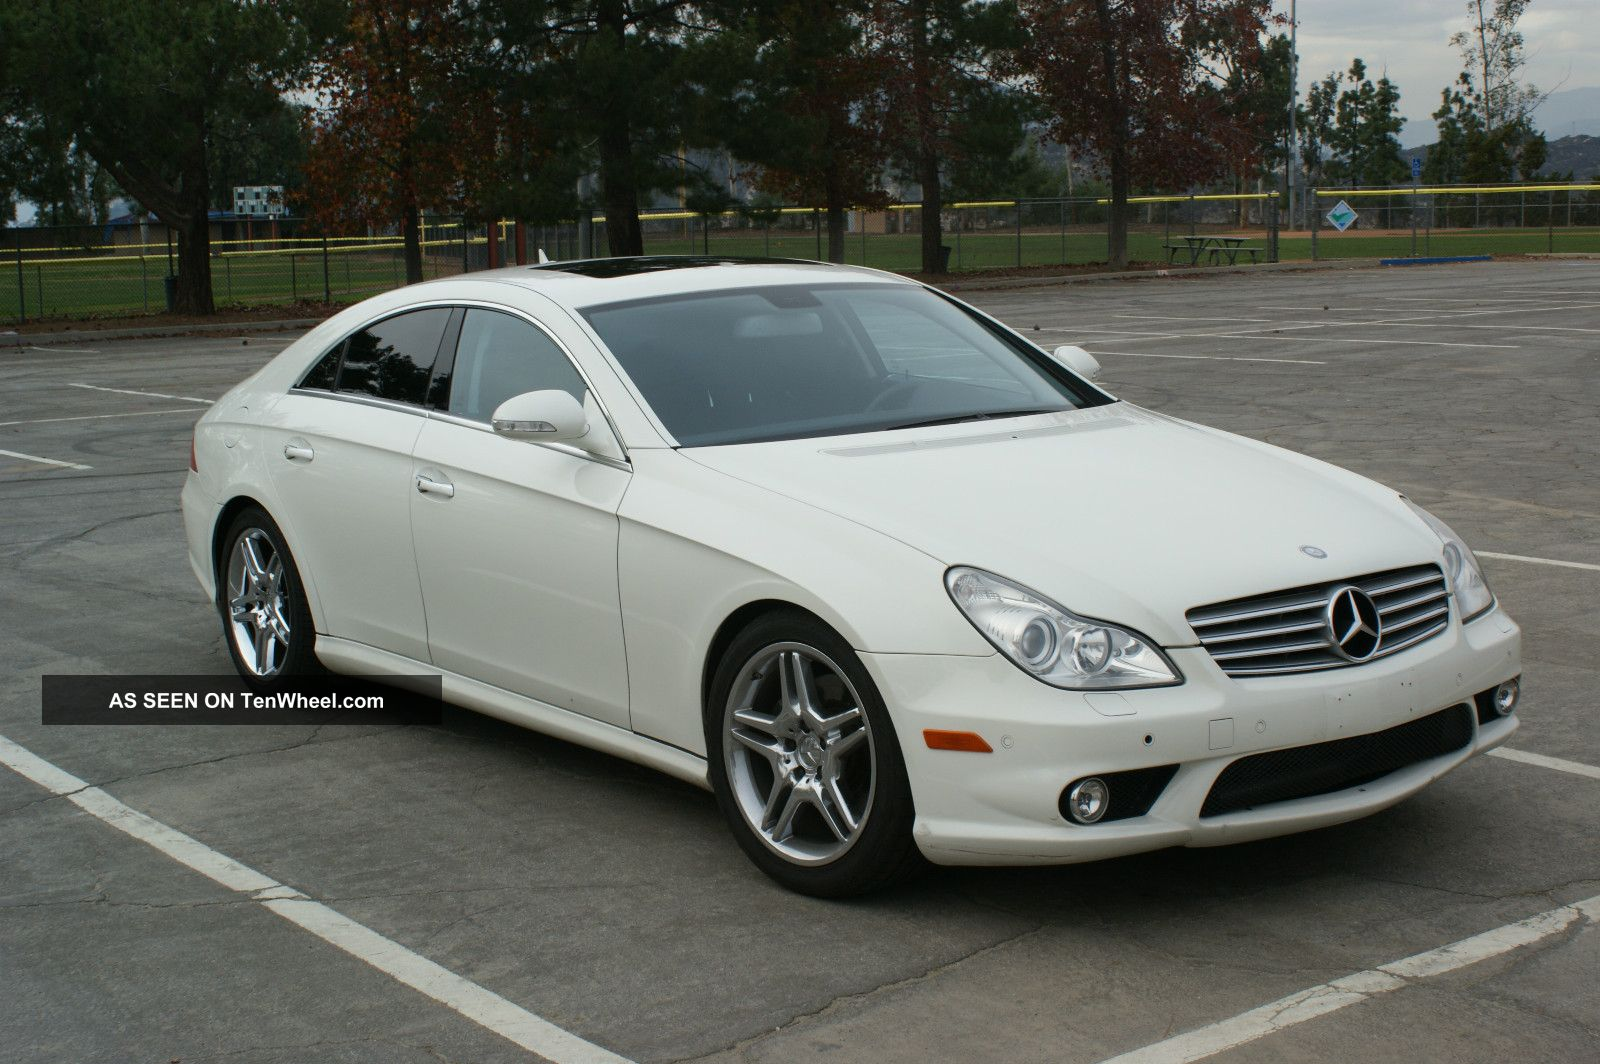 2007 mercedes benz cls550 base sedan 4 door 5 5l for 2007 mercedes benz cls